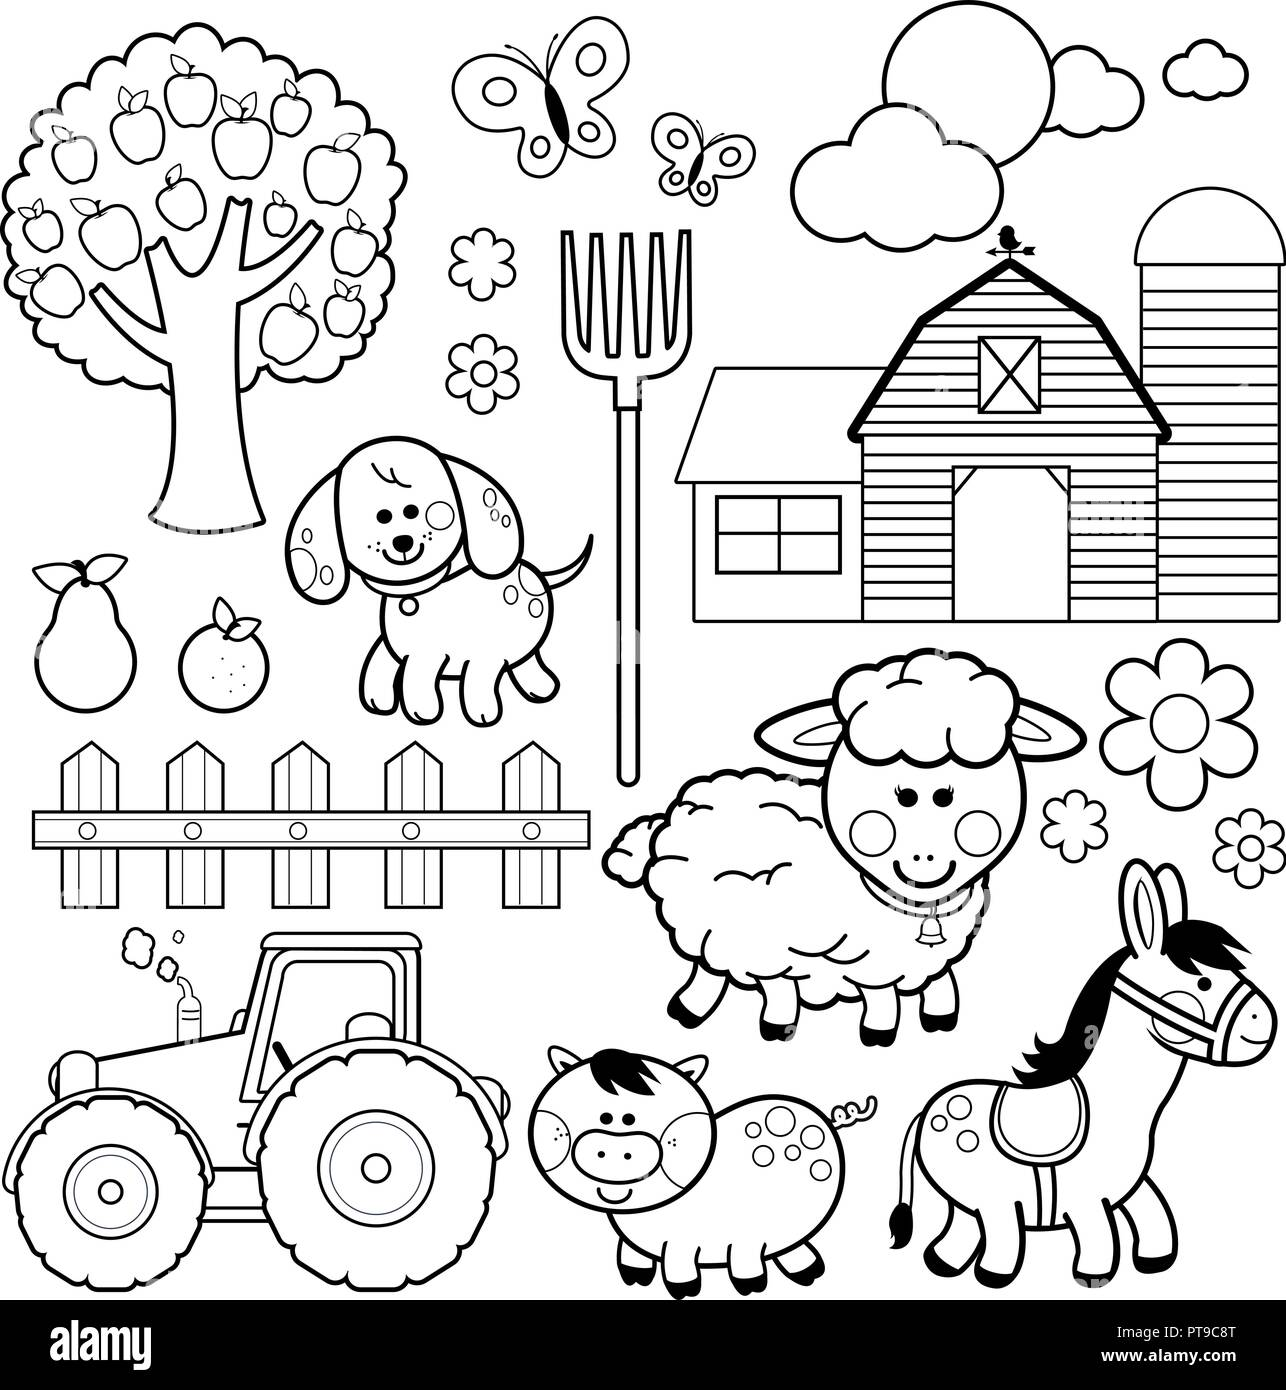 Farm Animals Vector Illustration Collection Black And